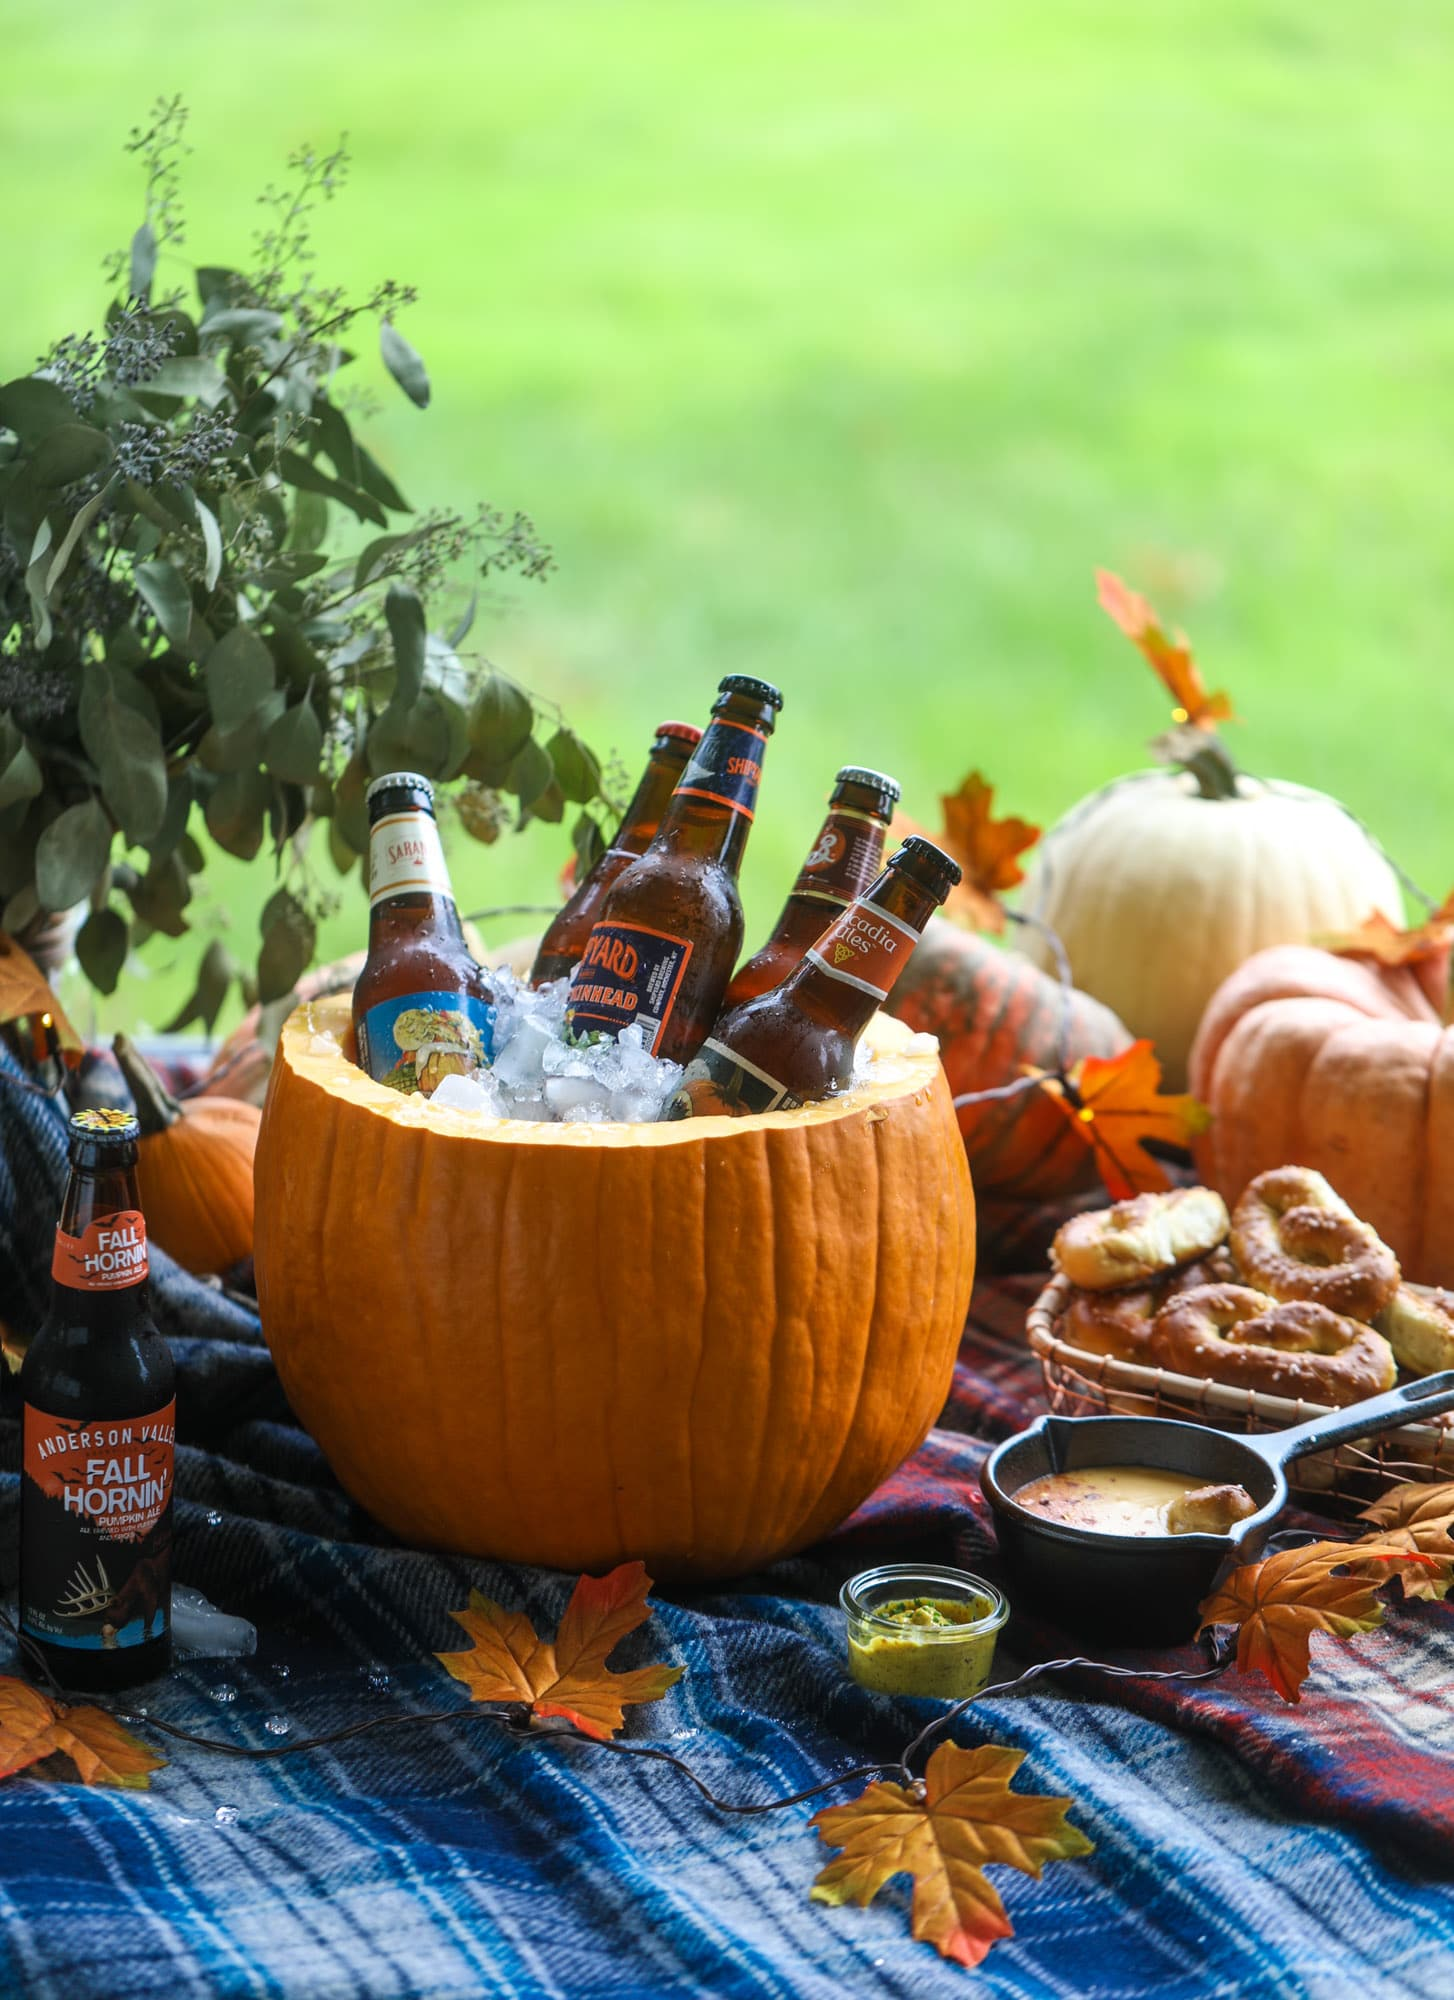 This is the cutest way ever to serve the best pumpkin beer! If you do a pumpkin beer party of a pumpkin beer tasting, this pumpkin cooler is an adorable (and easy!) way to make things festive. Kick it up with a hot pretzel bar and lots of dipping sauce too! I howsweeteats.com #pumpkin #beer #cooler #softpretzel #fall #cheese